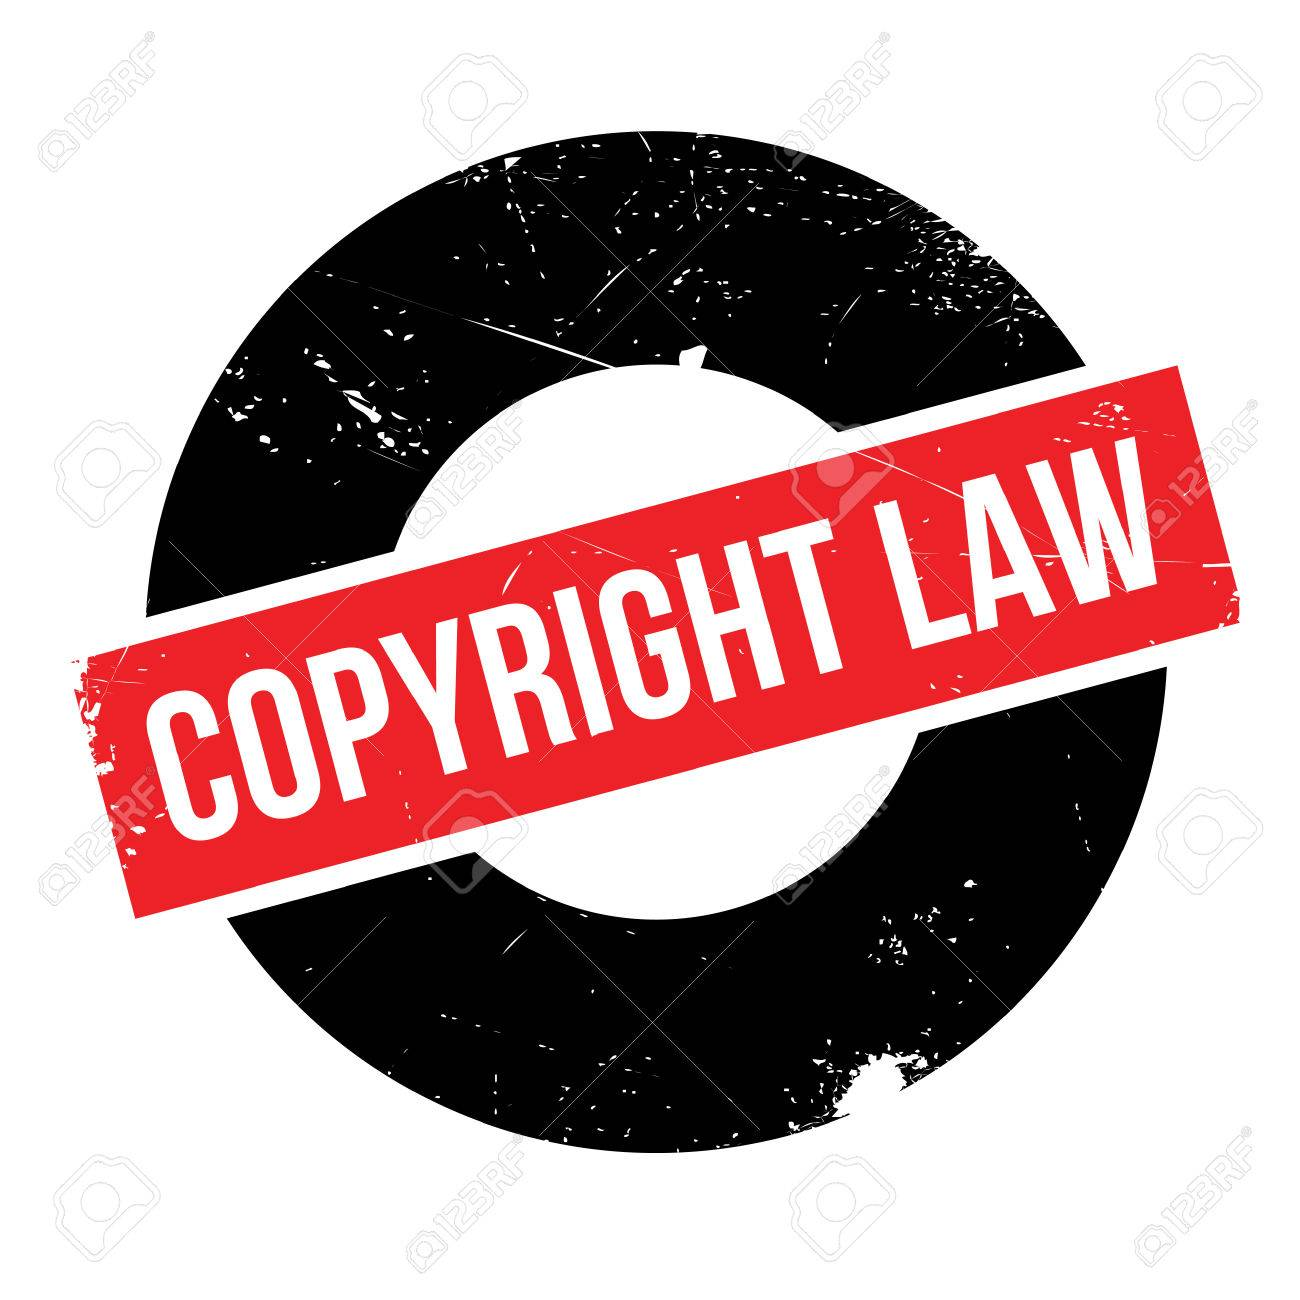 Website Copyrighting - Necessity or Formality?